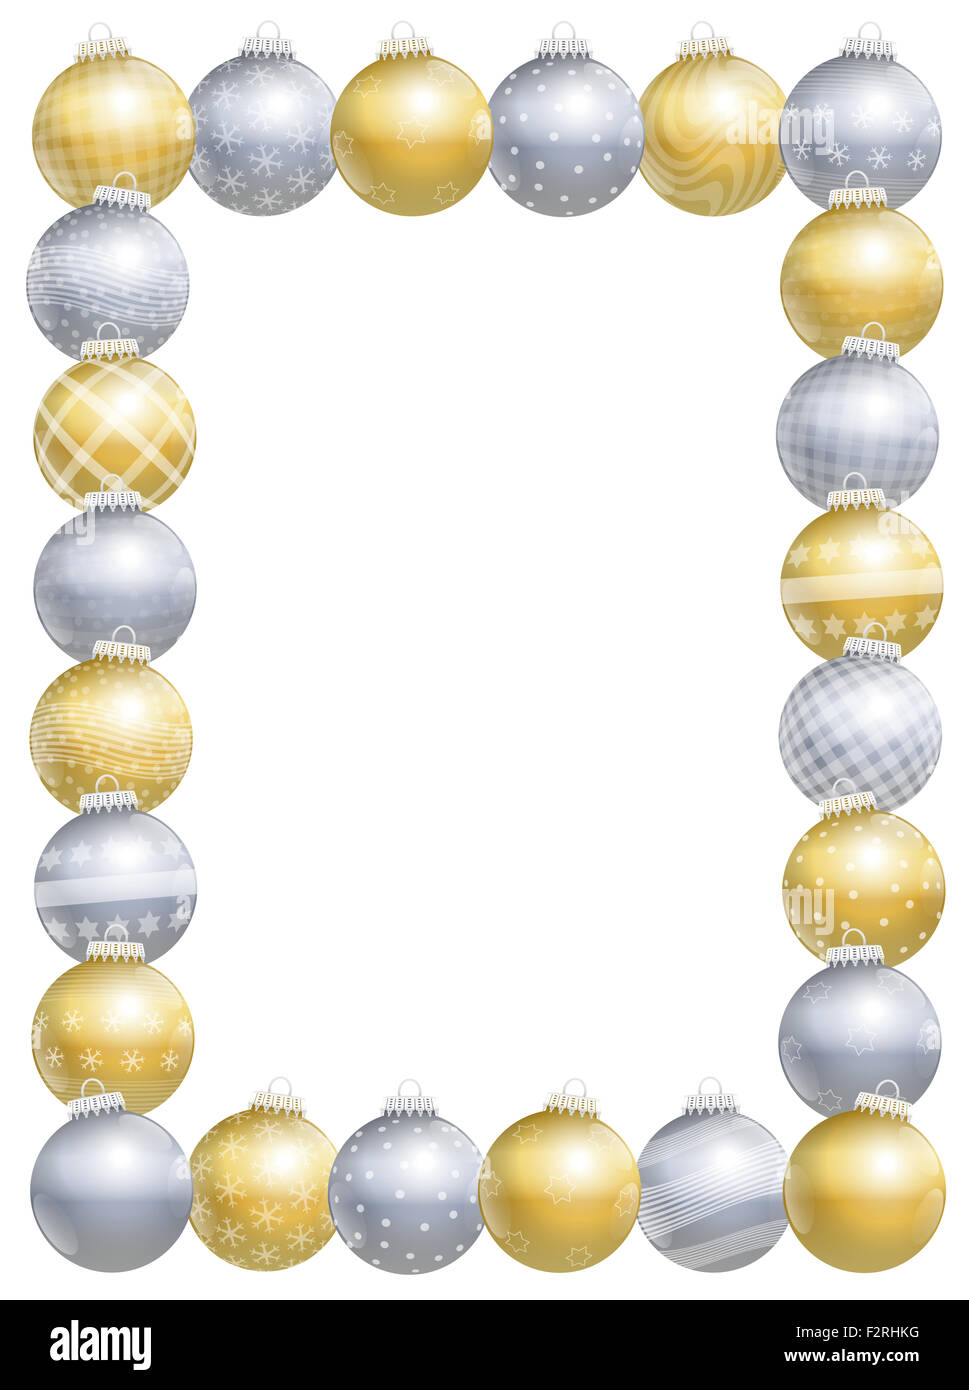 Christmas balls picture frame, gold, silver, different ornaments and patterns, twenty-four items, vertical portrait - Stock Image